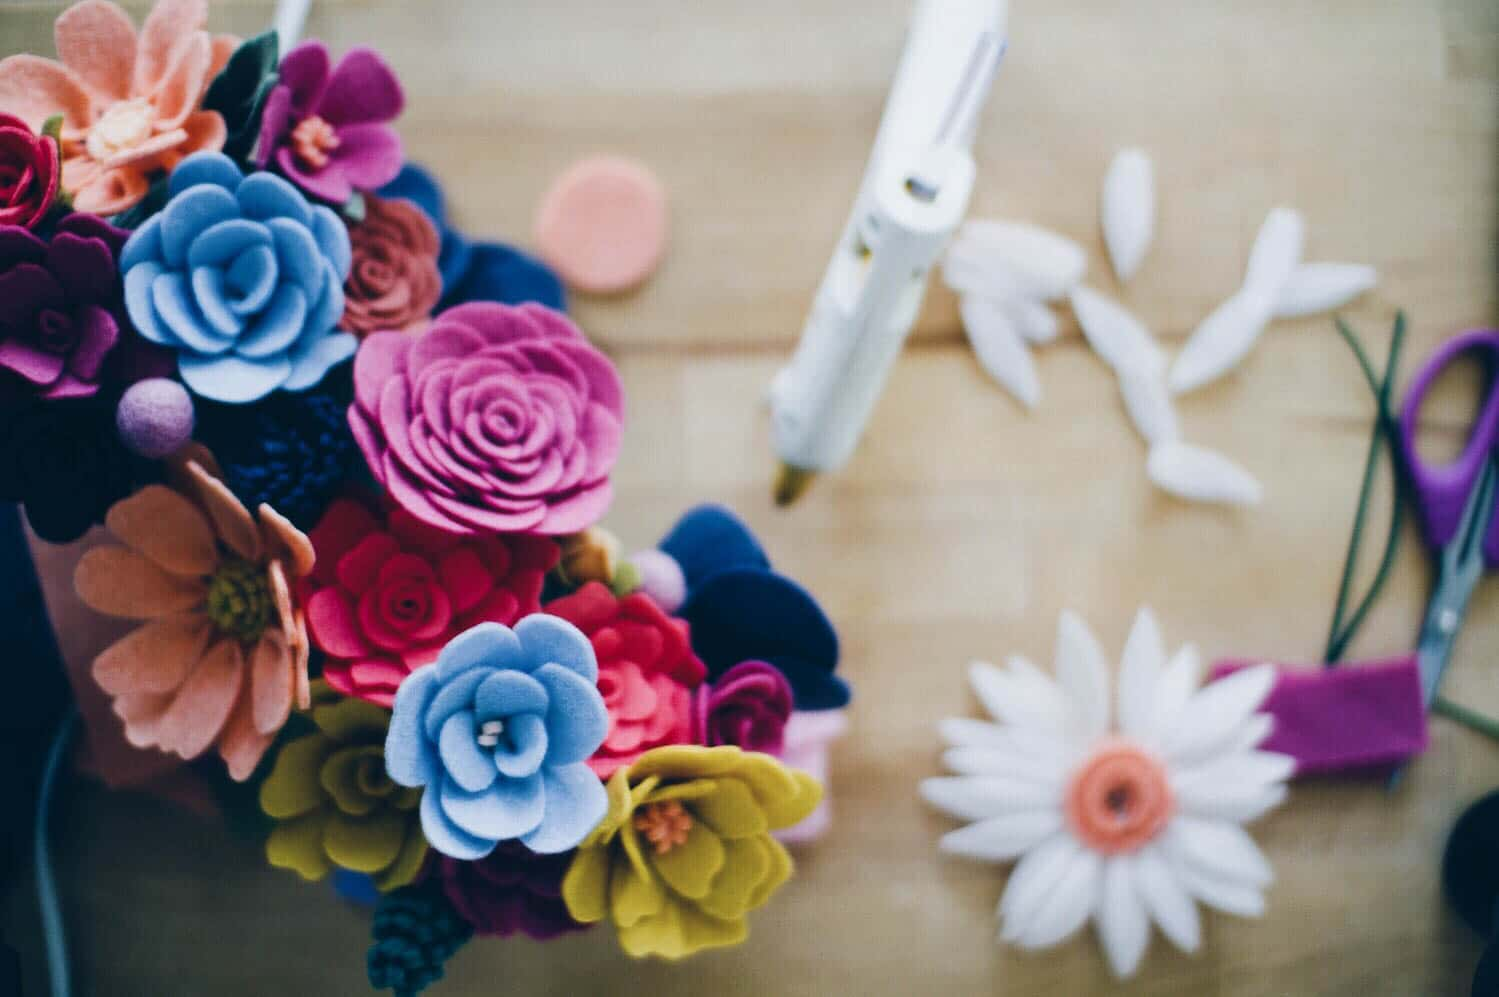 LEARN: How to Make a Felt Flower Step-by-Step